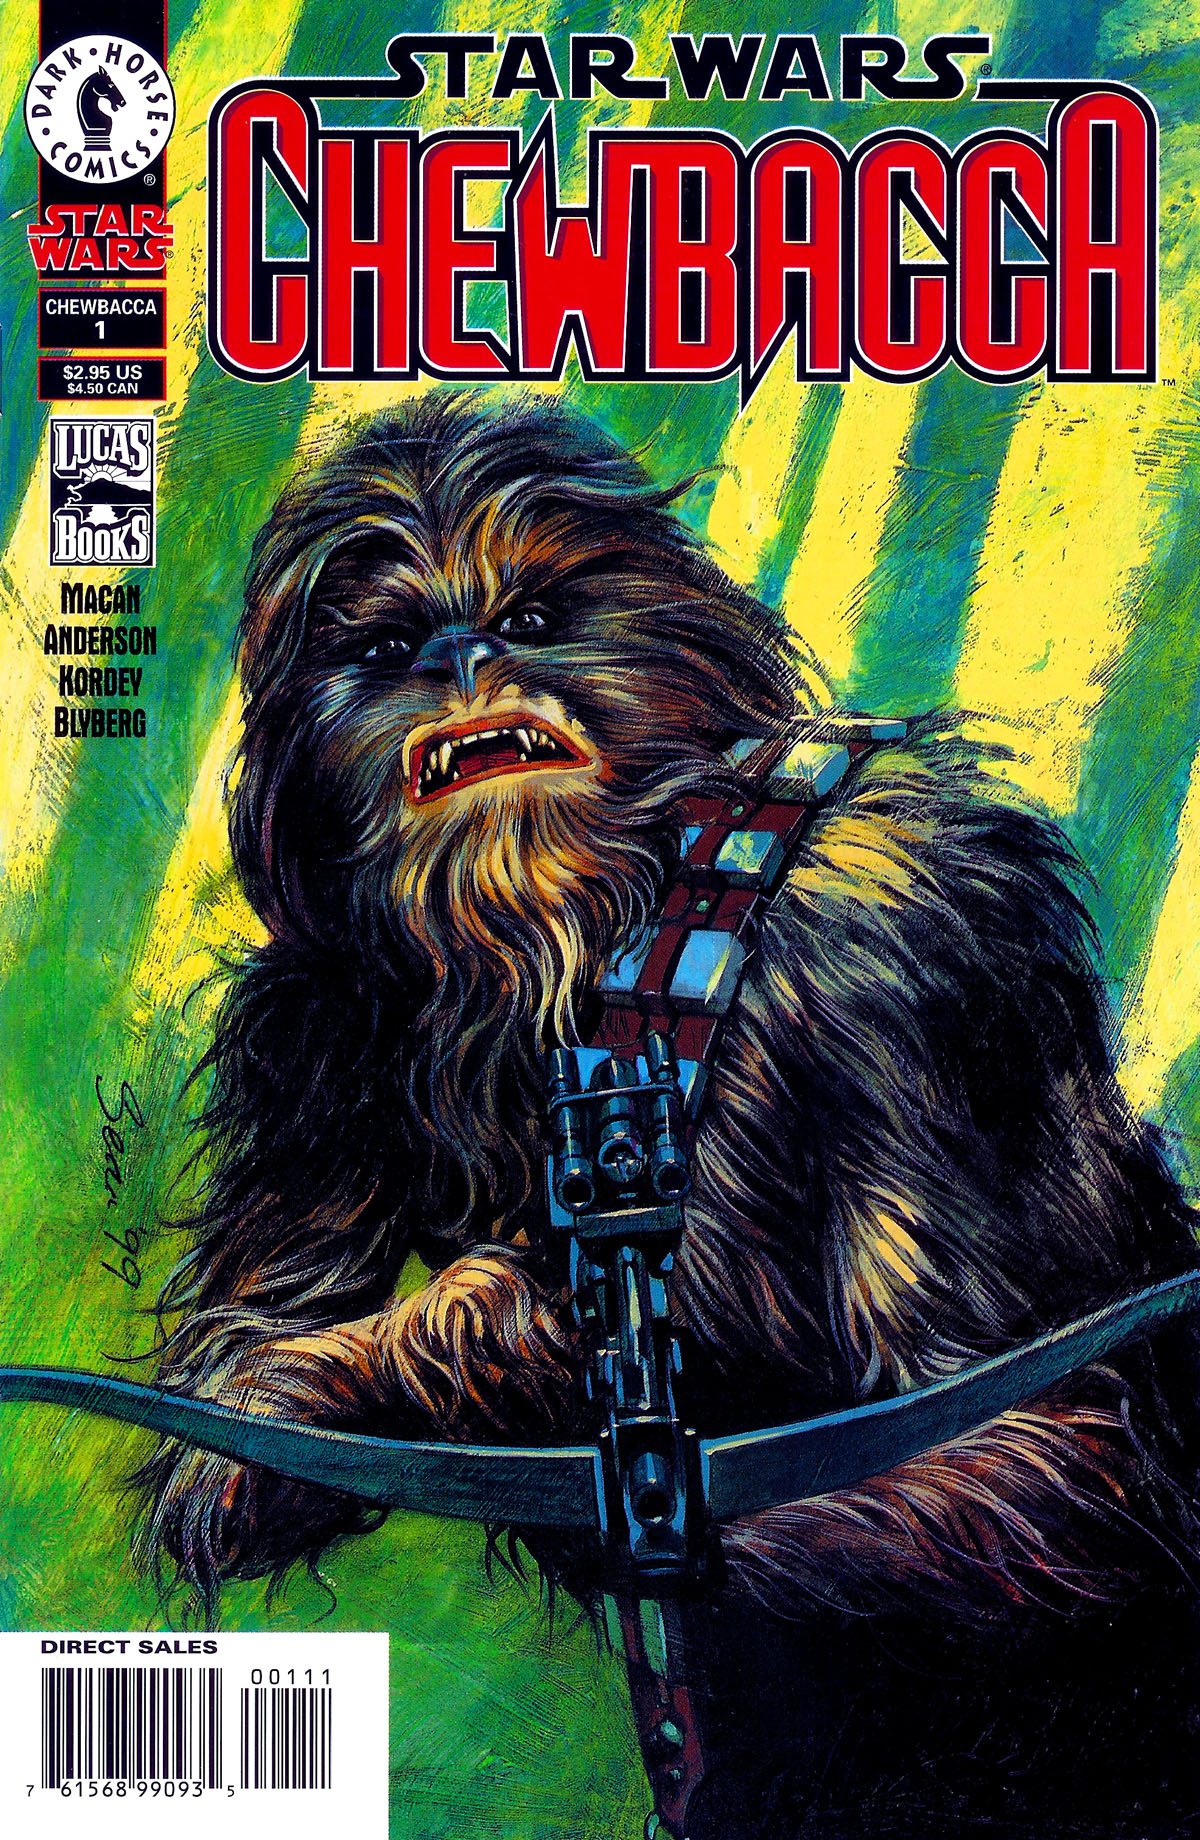 Star Wars: Chewbacca (Dark Horse)